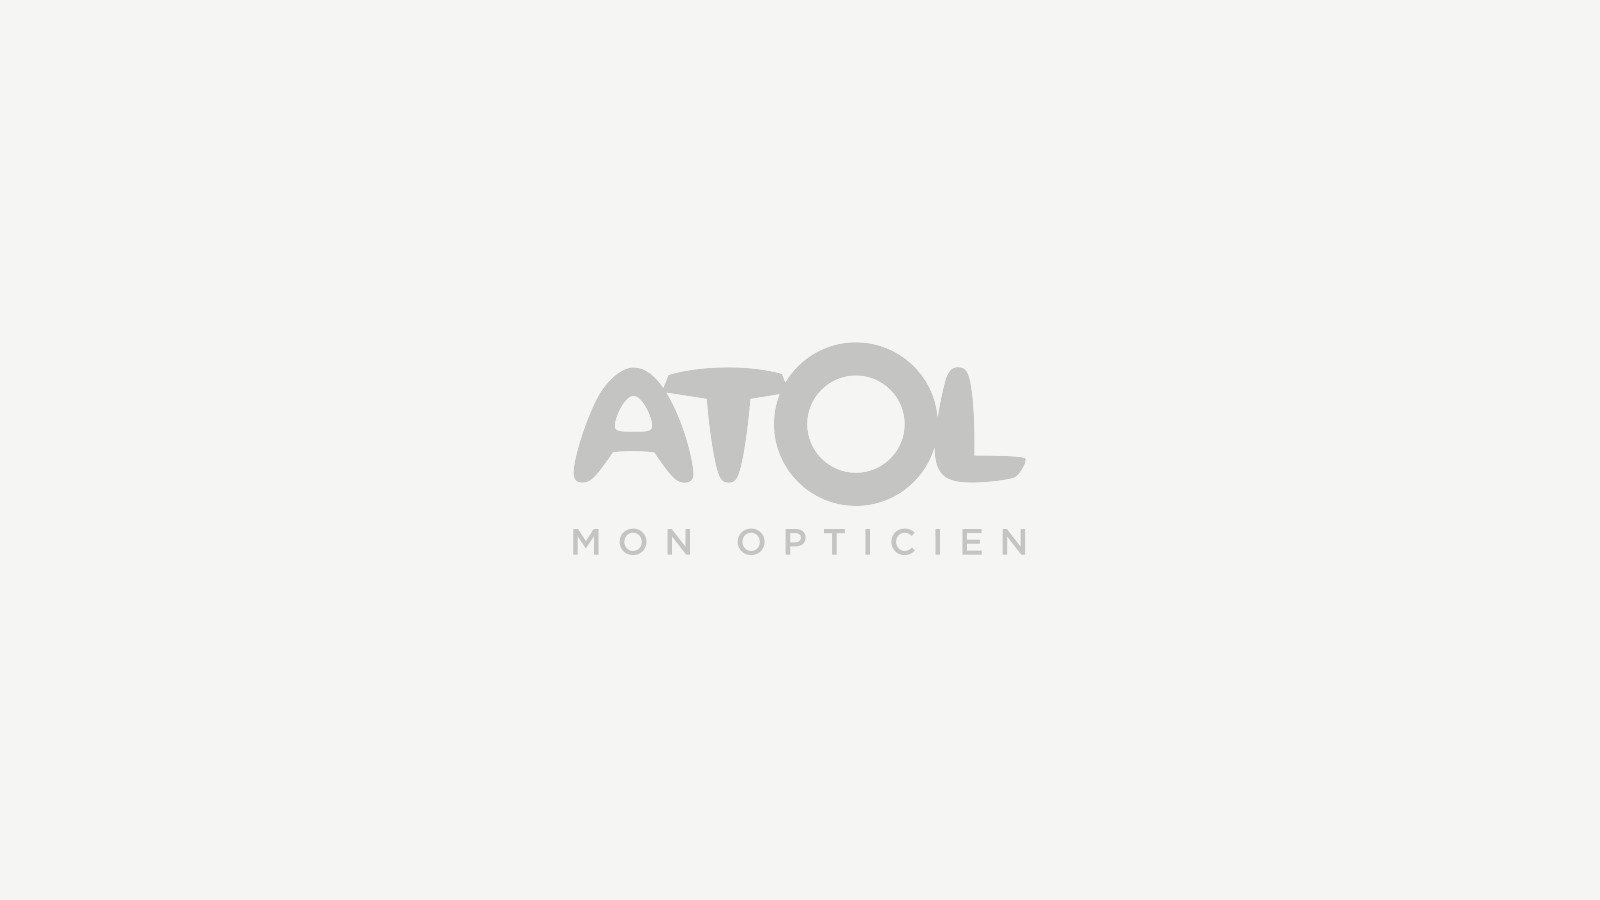 Lentilles de contact 1-DAY ACUV M. FOR ASTIG (x30) -image n°1